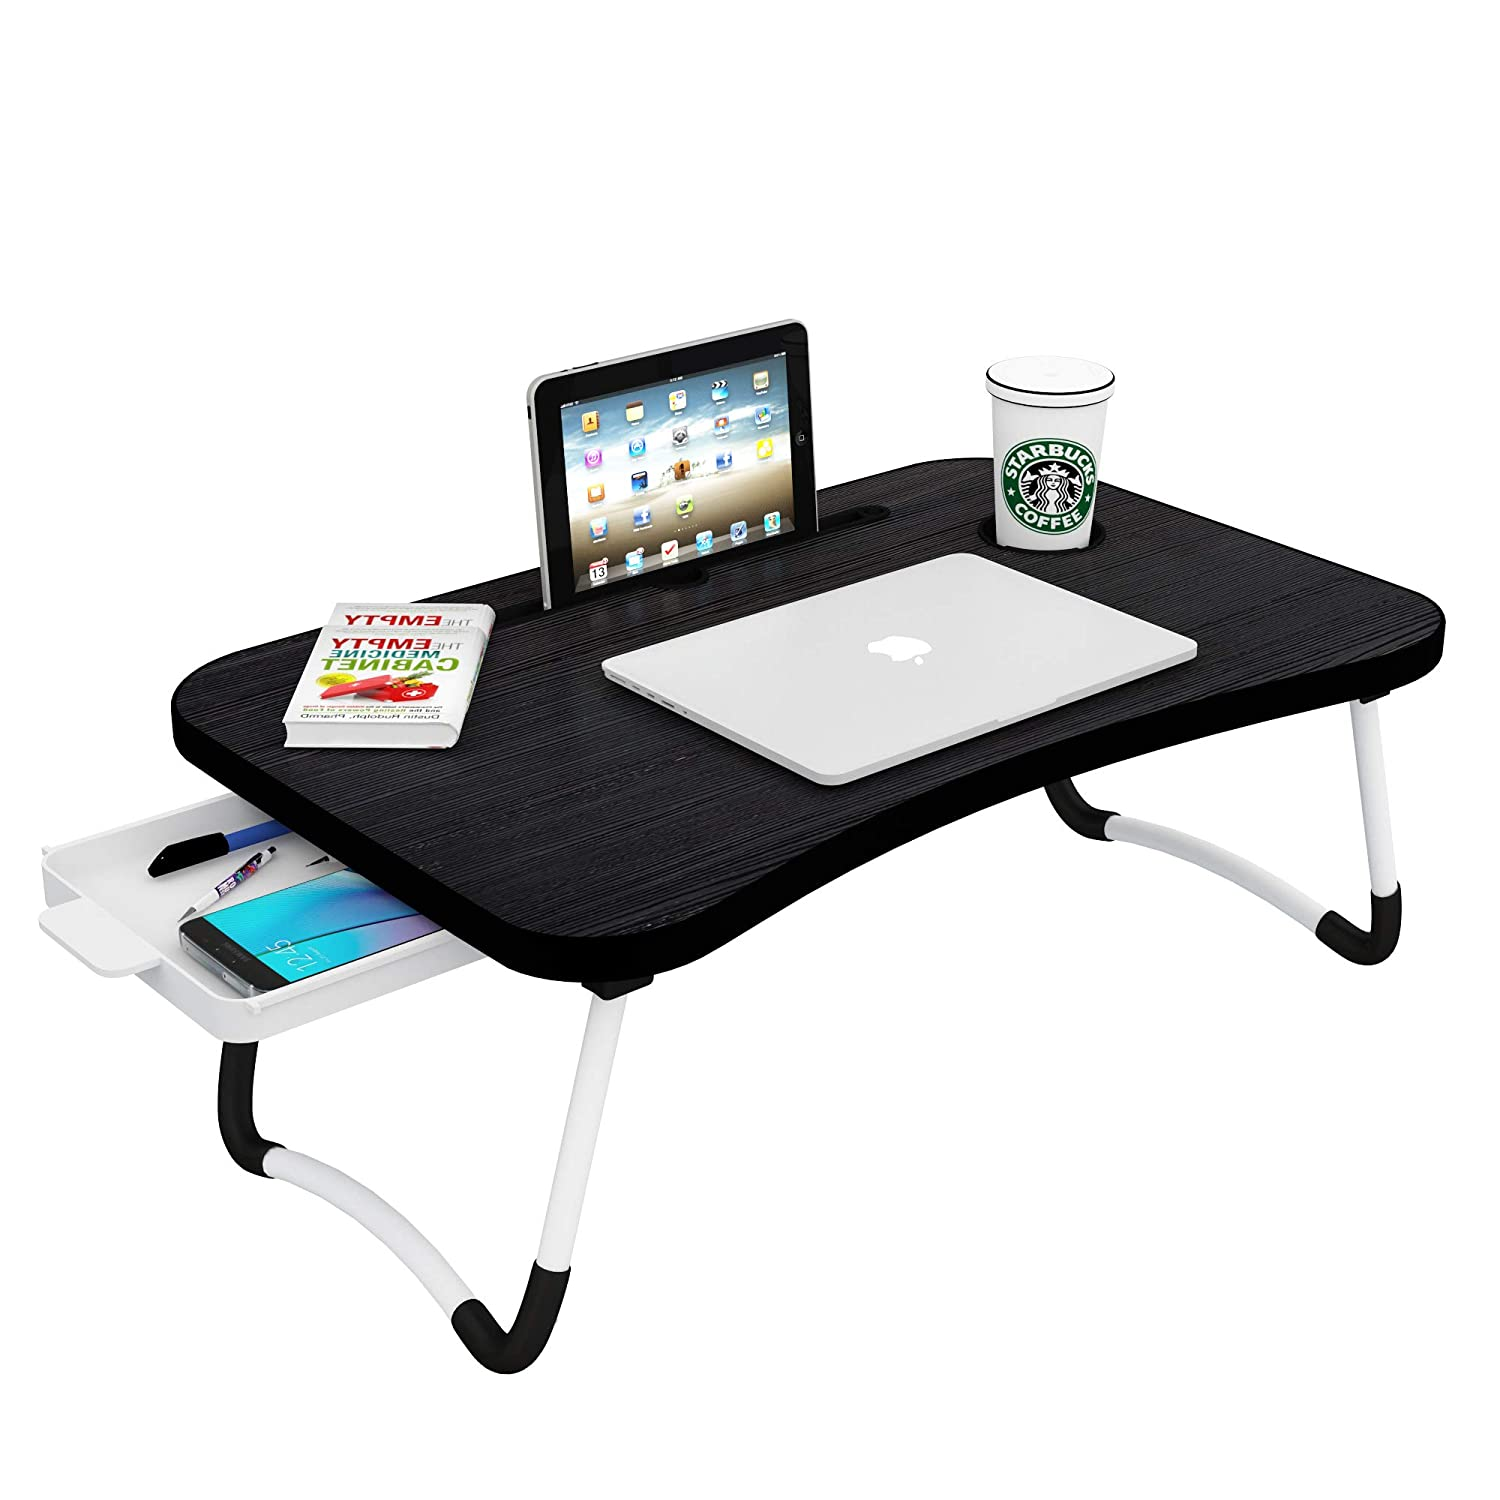 Callas Multipurpose Foldable Laptop Table with Cup Holder, Study Table